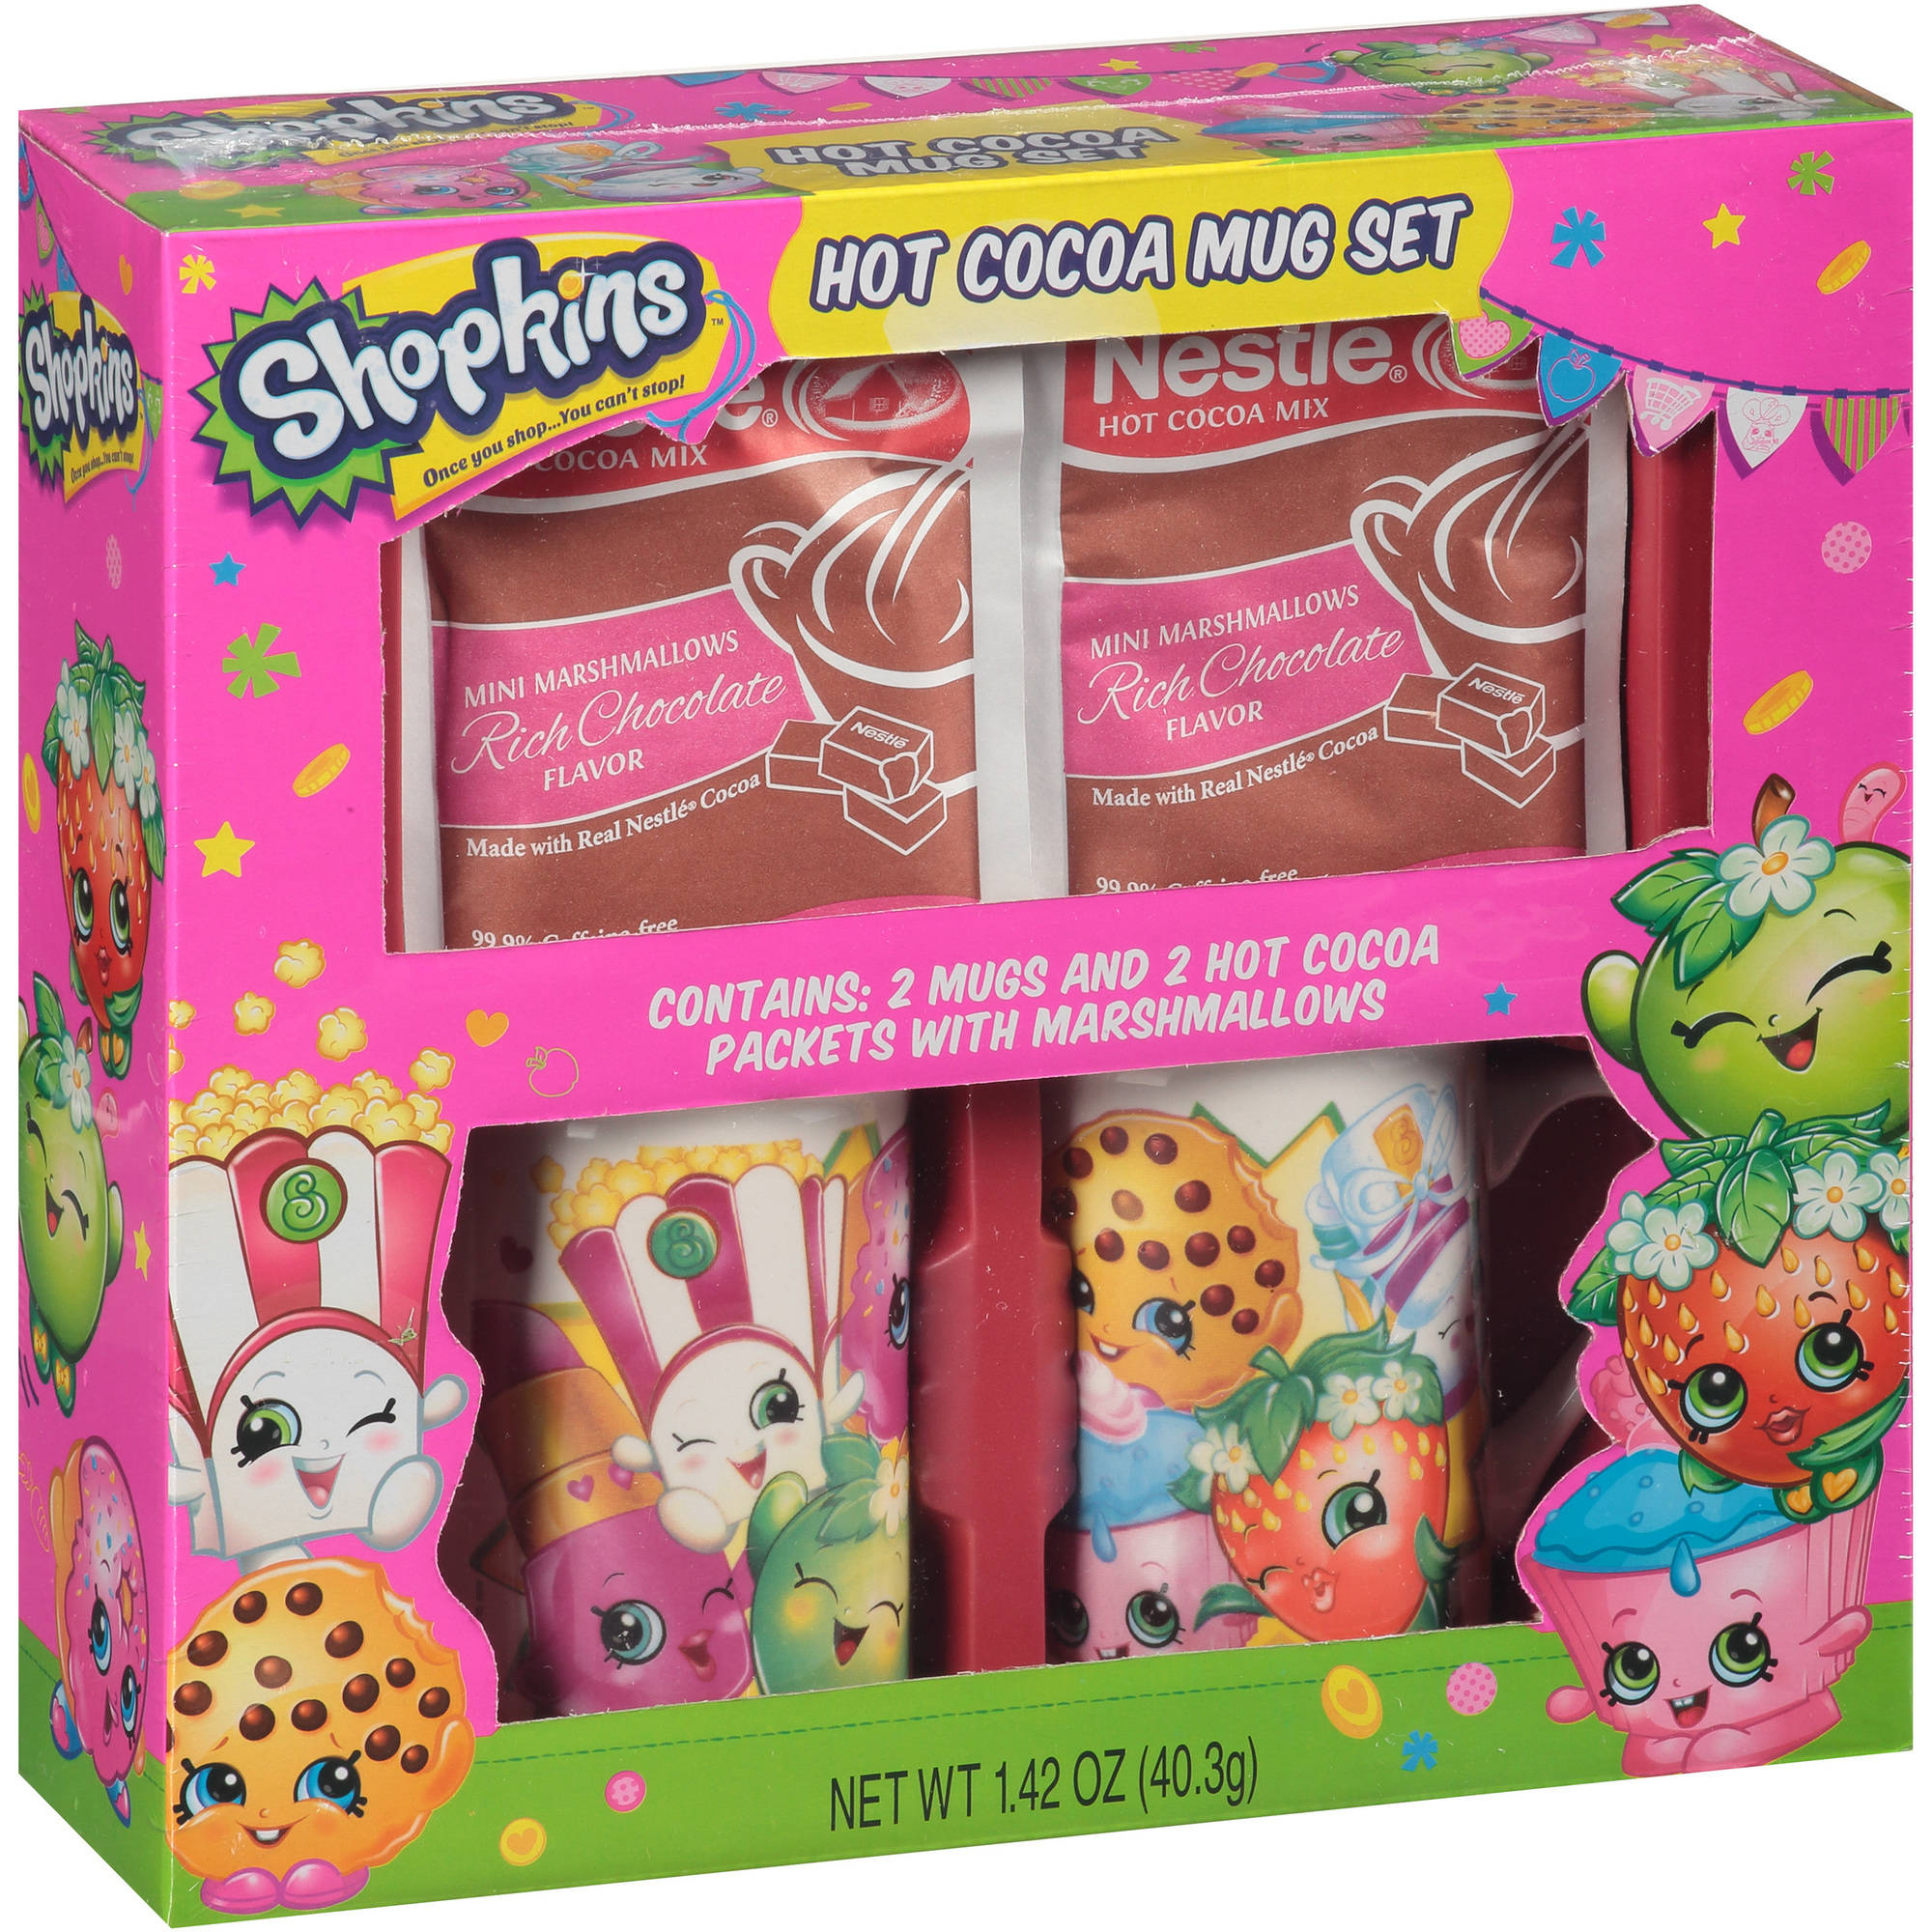 Shopkins Hot Cocoa Mug Set, 4 pc